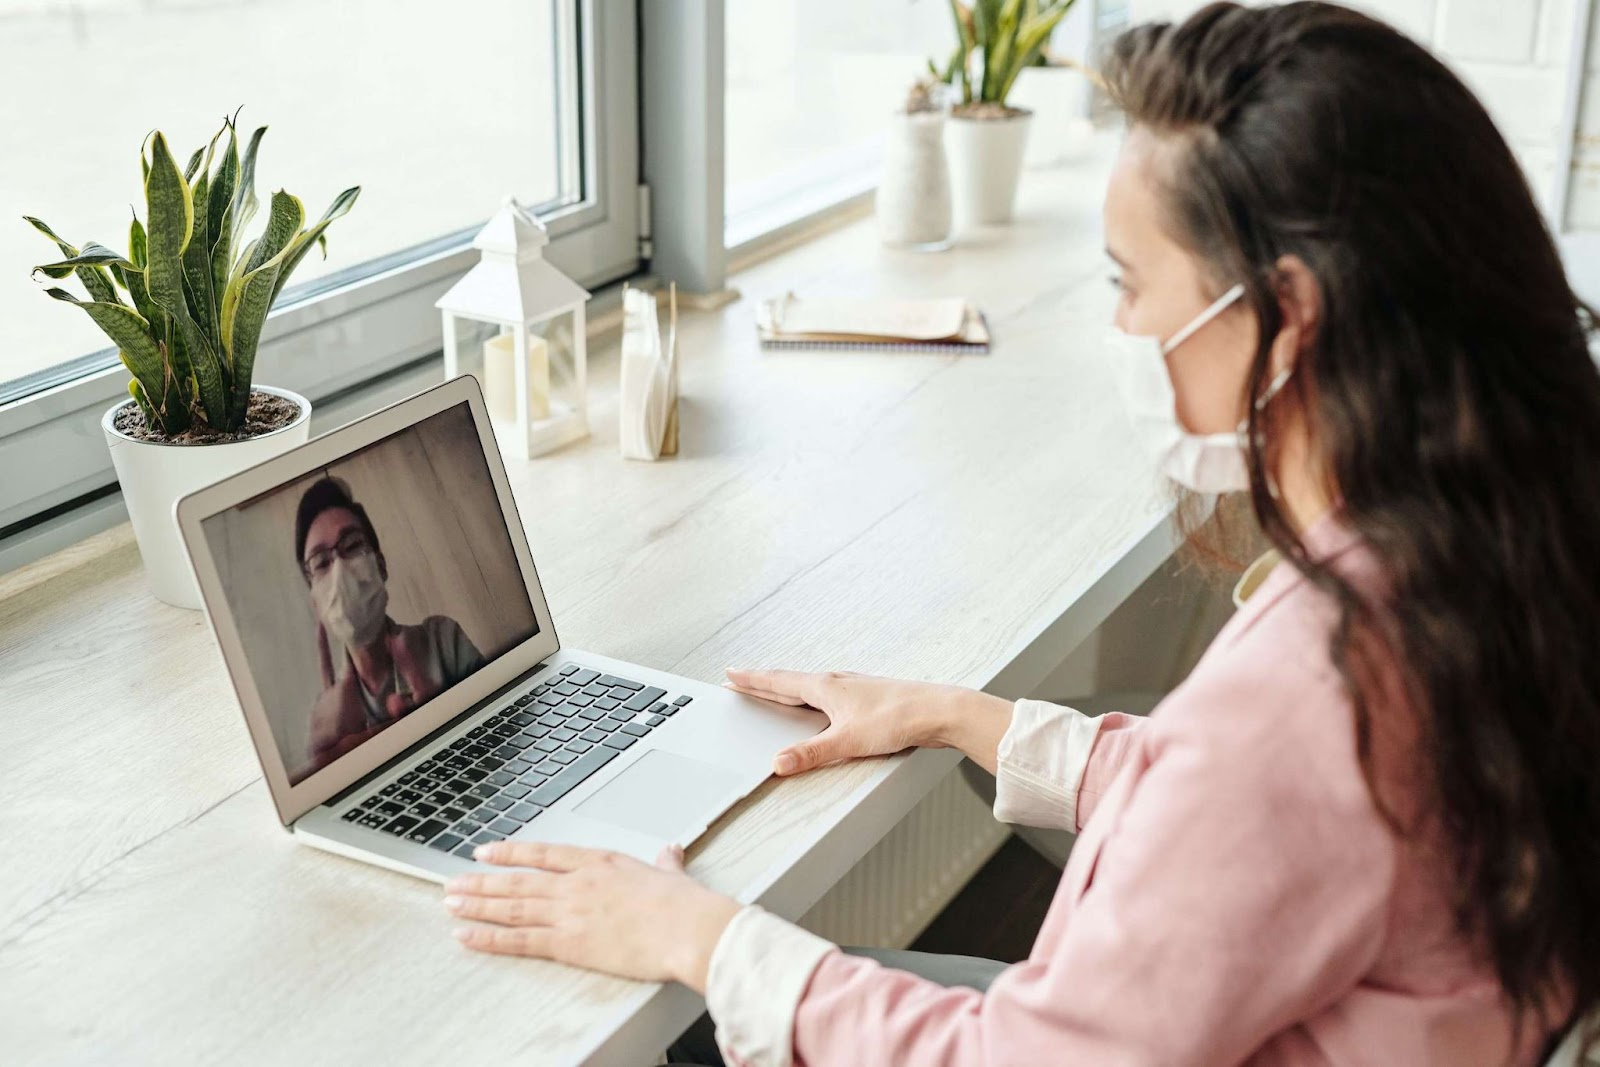 A woman speaking to her doctor through video chat